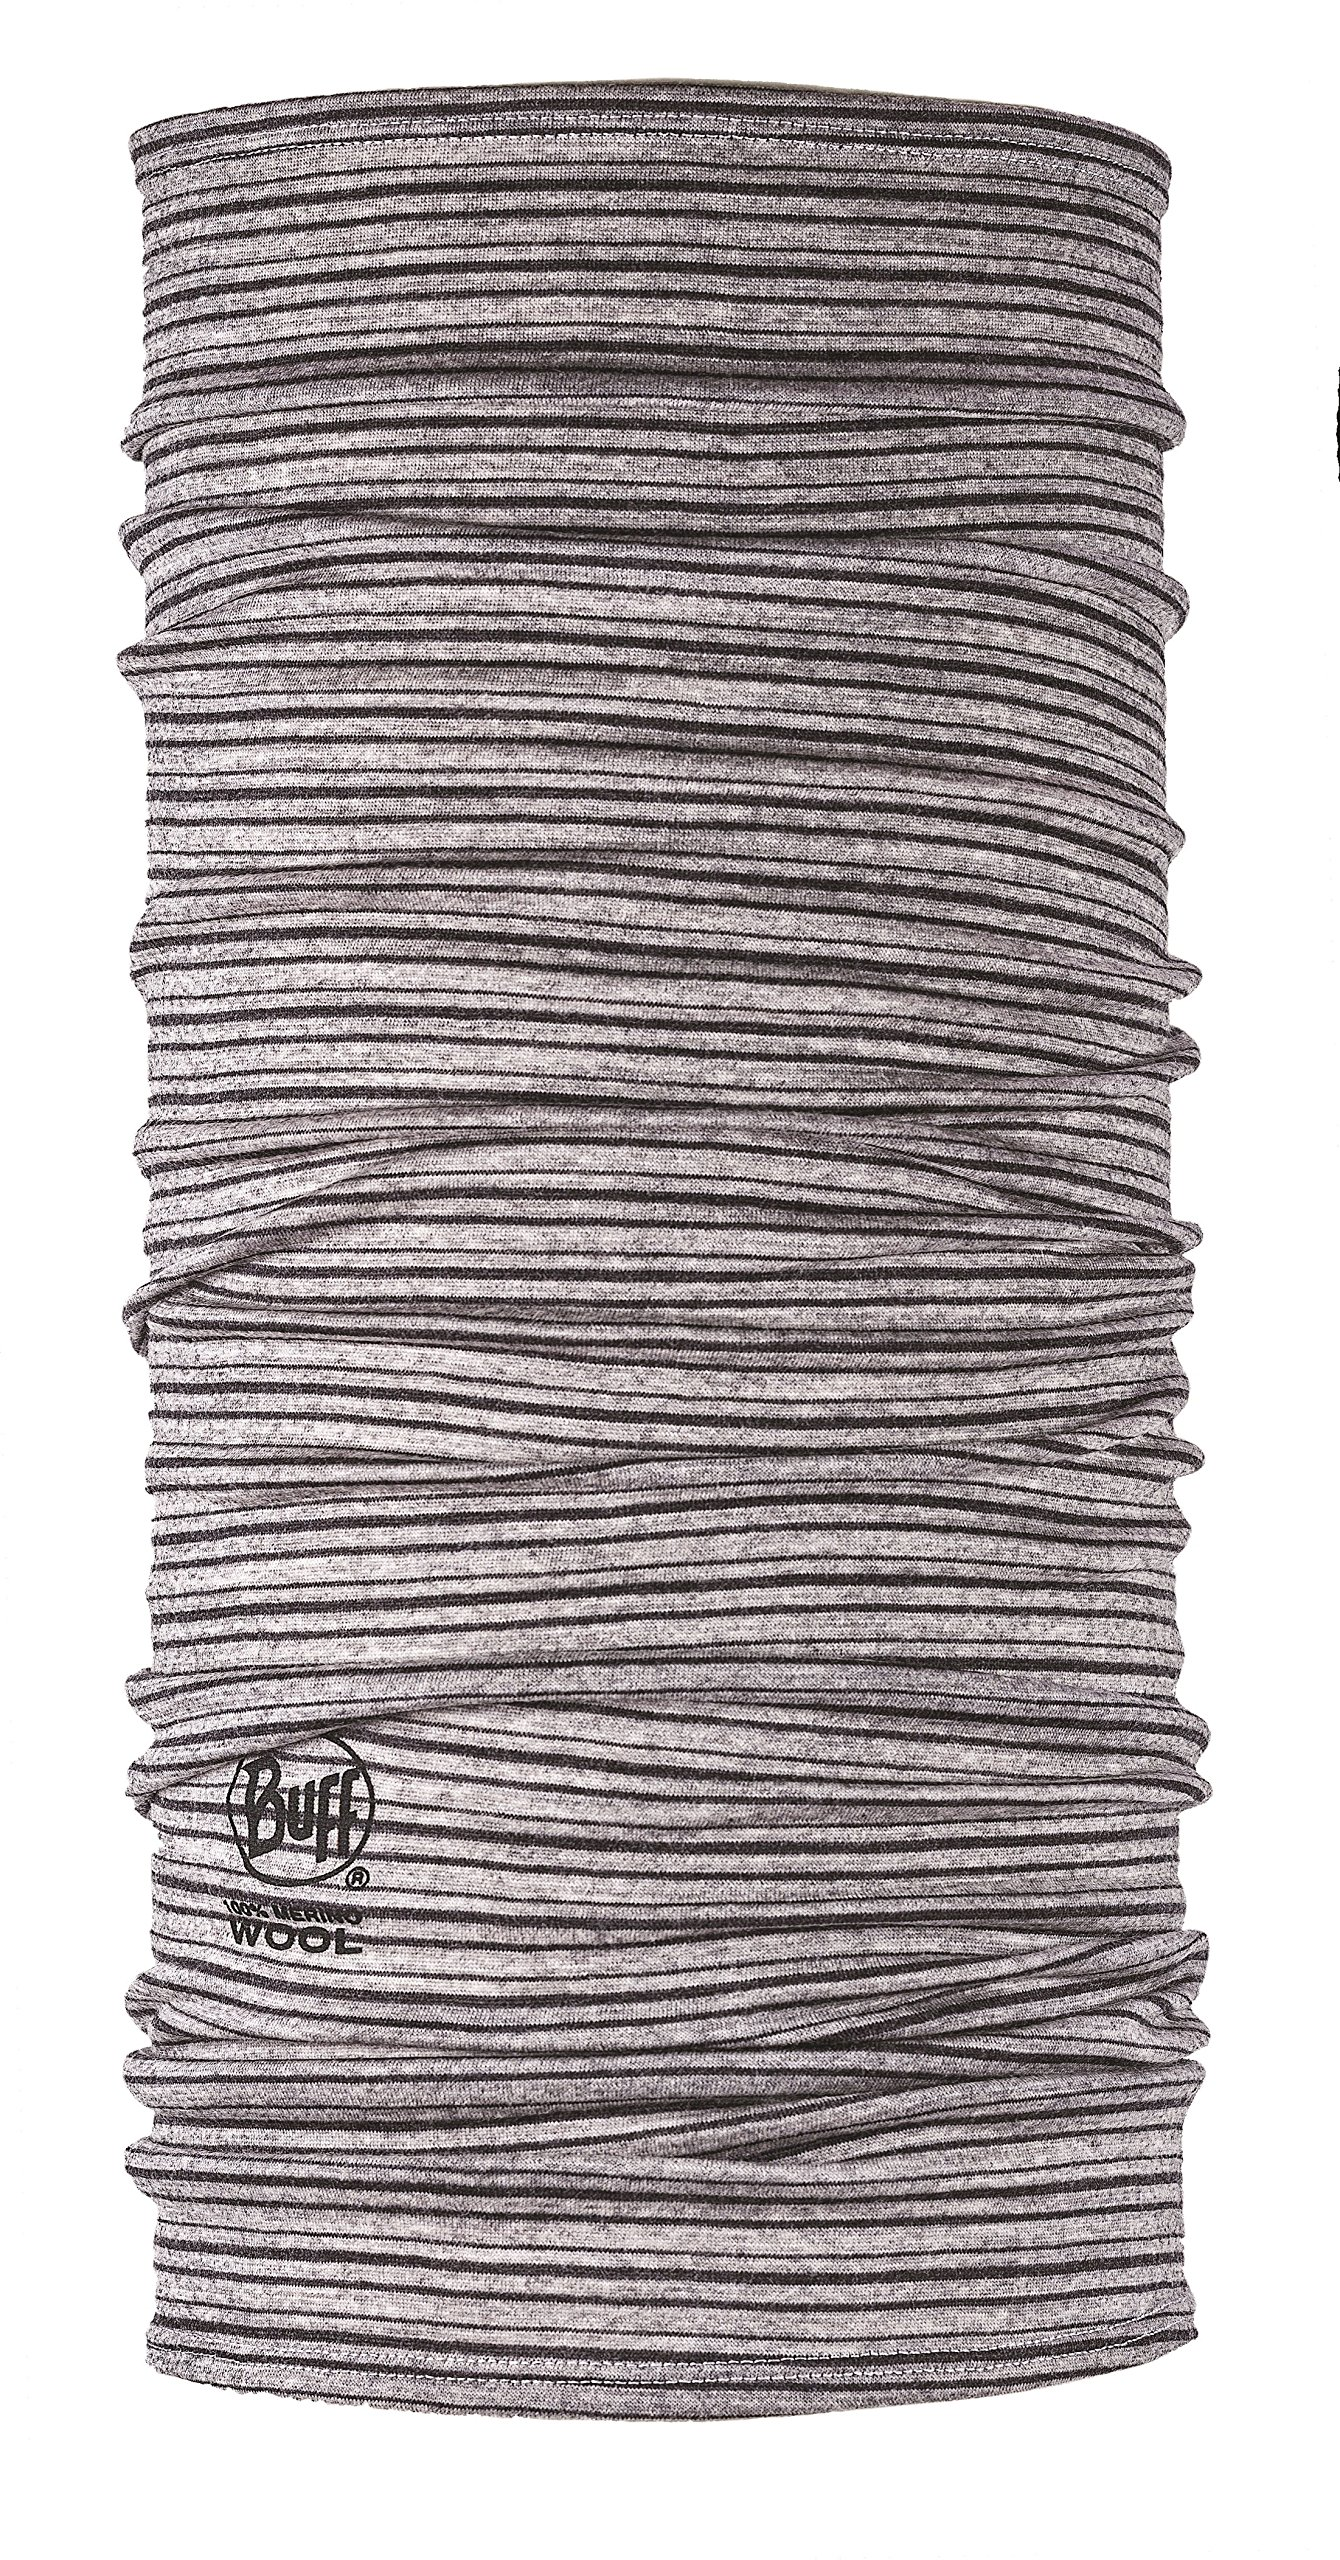 Buff Lightweight Merino Wool Multifunctional Headwear, Light Grey Stripes, One Size